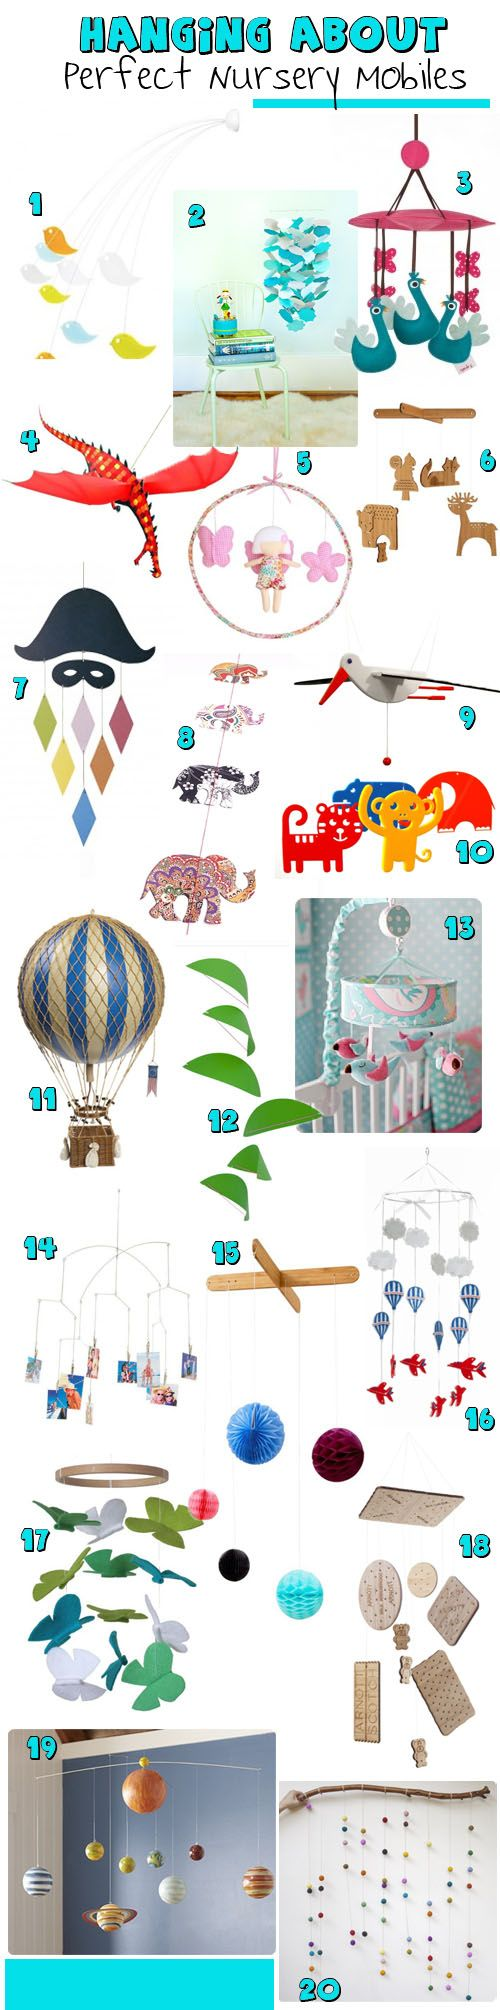 KidStyleFile Roundup: Our Top 20 Best Baby Mobiles